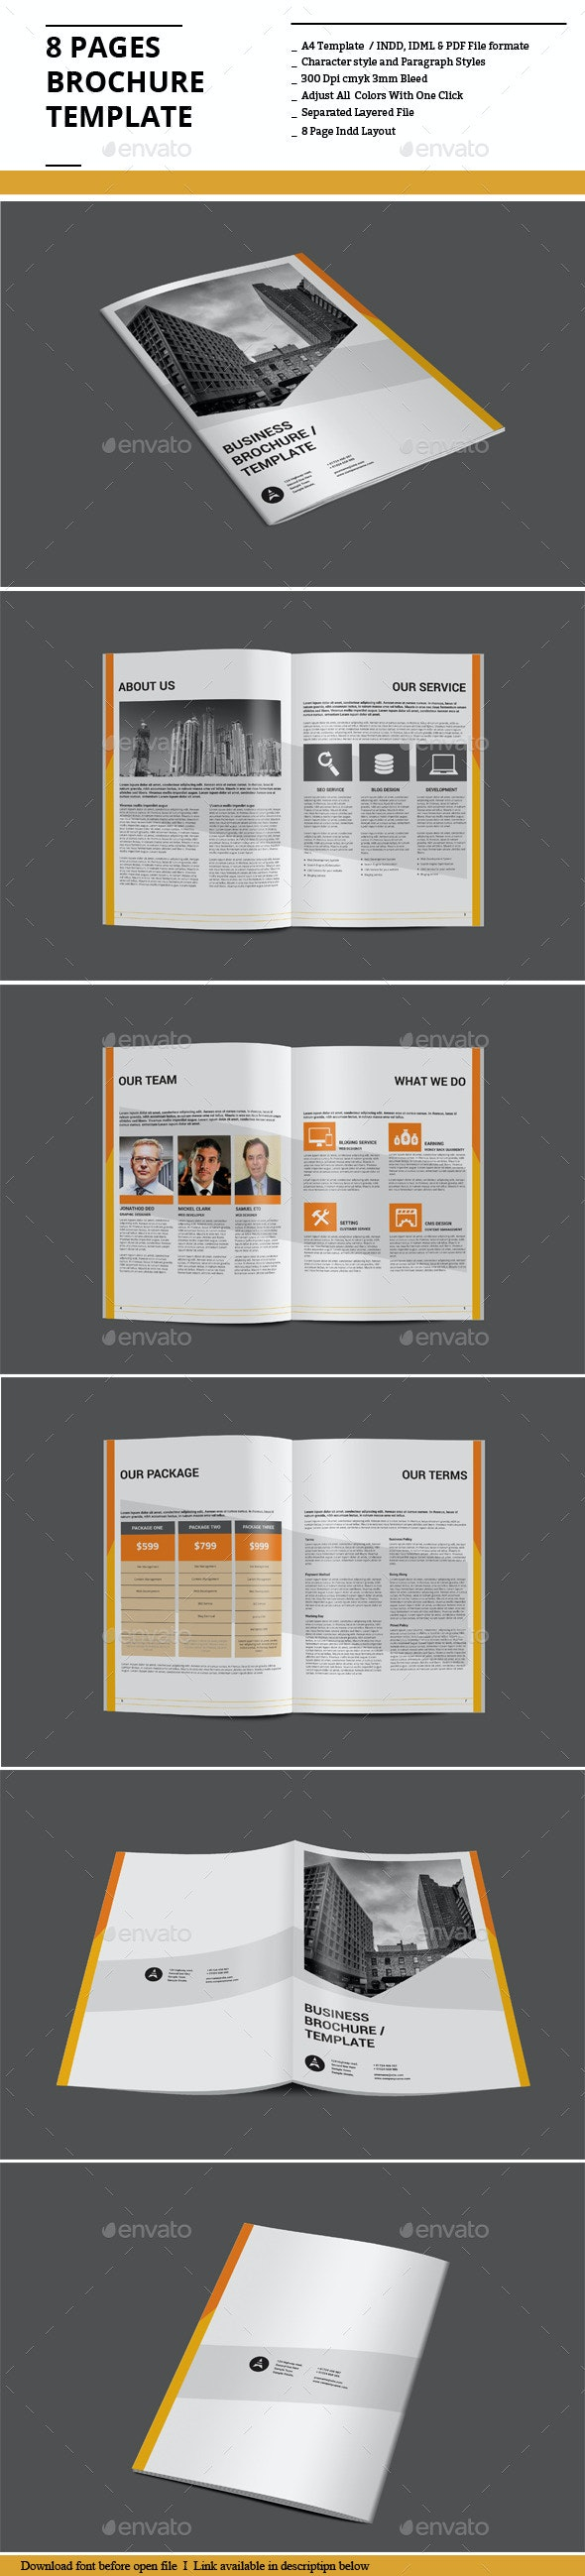 8 Pages Brochure Template - Corporate Brochures